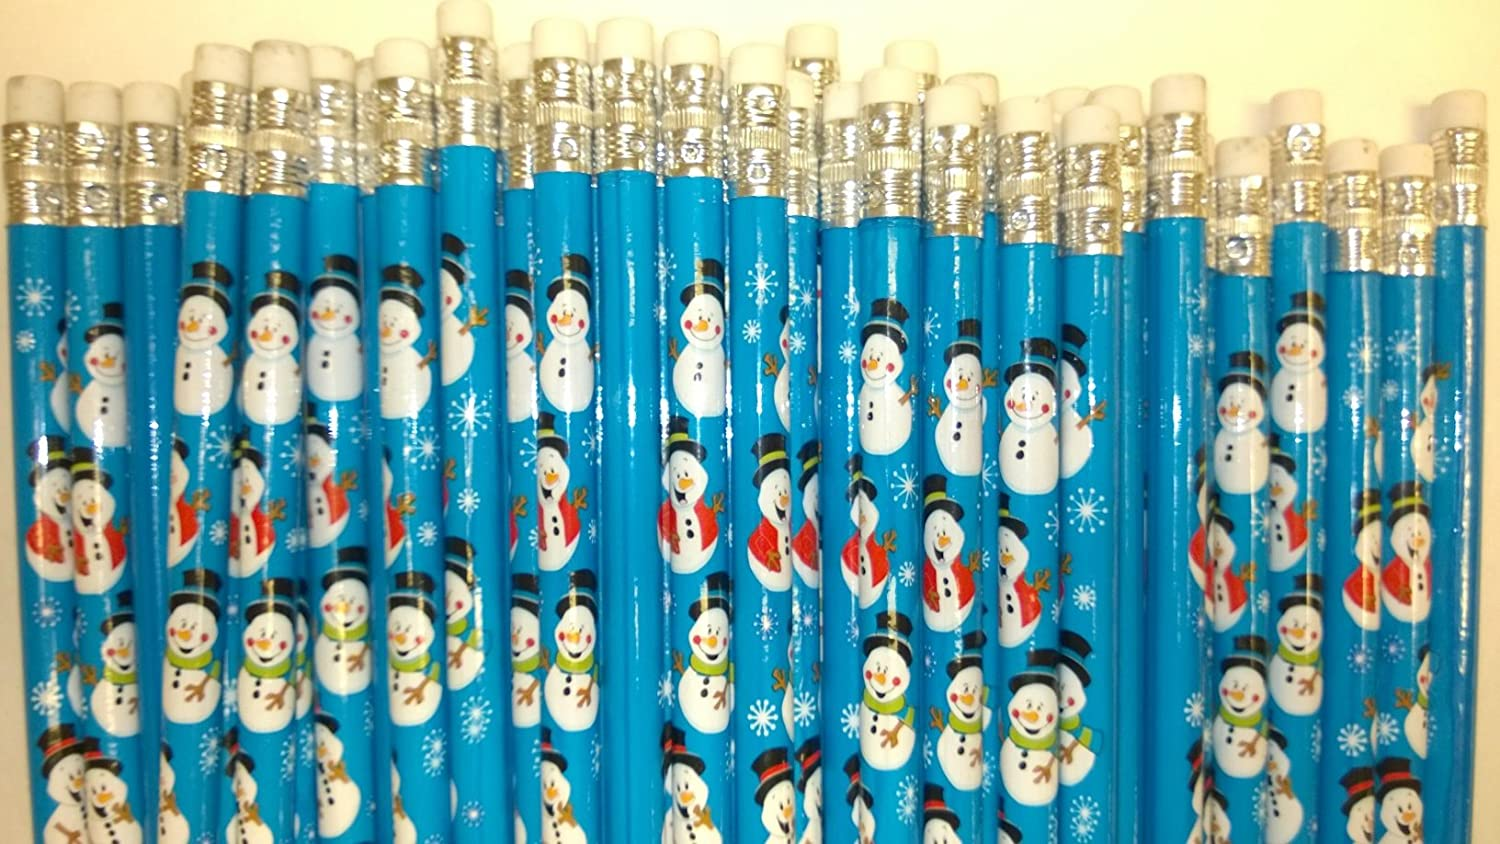 144 Snowman Christmas Holiday Pencils - SNOWMEN PENCILS toyco